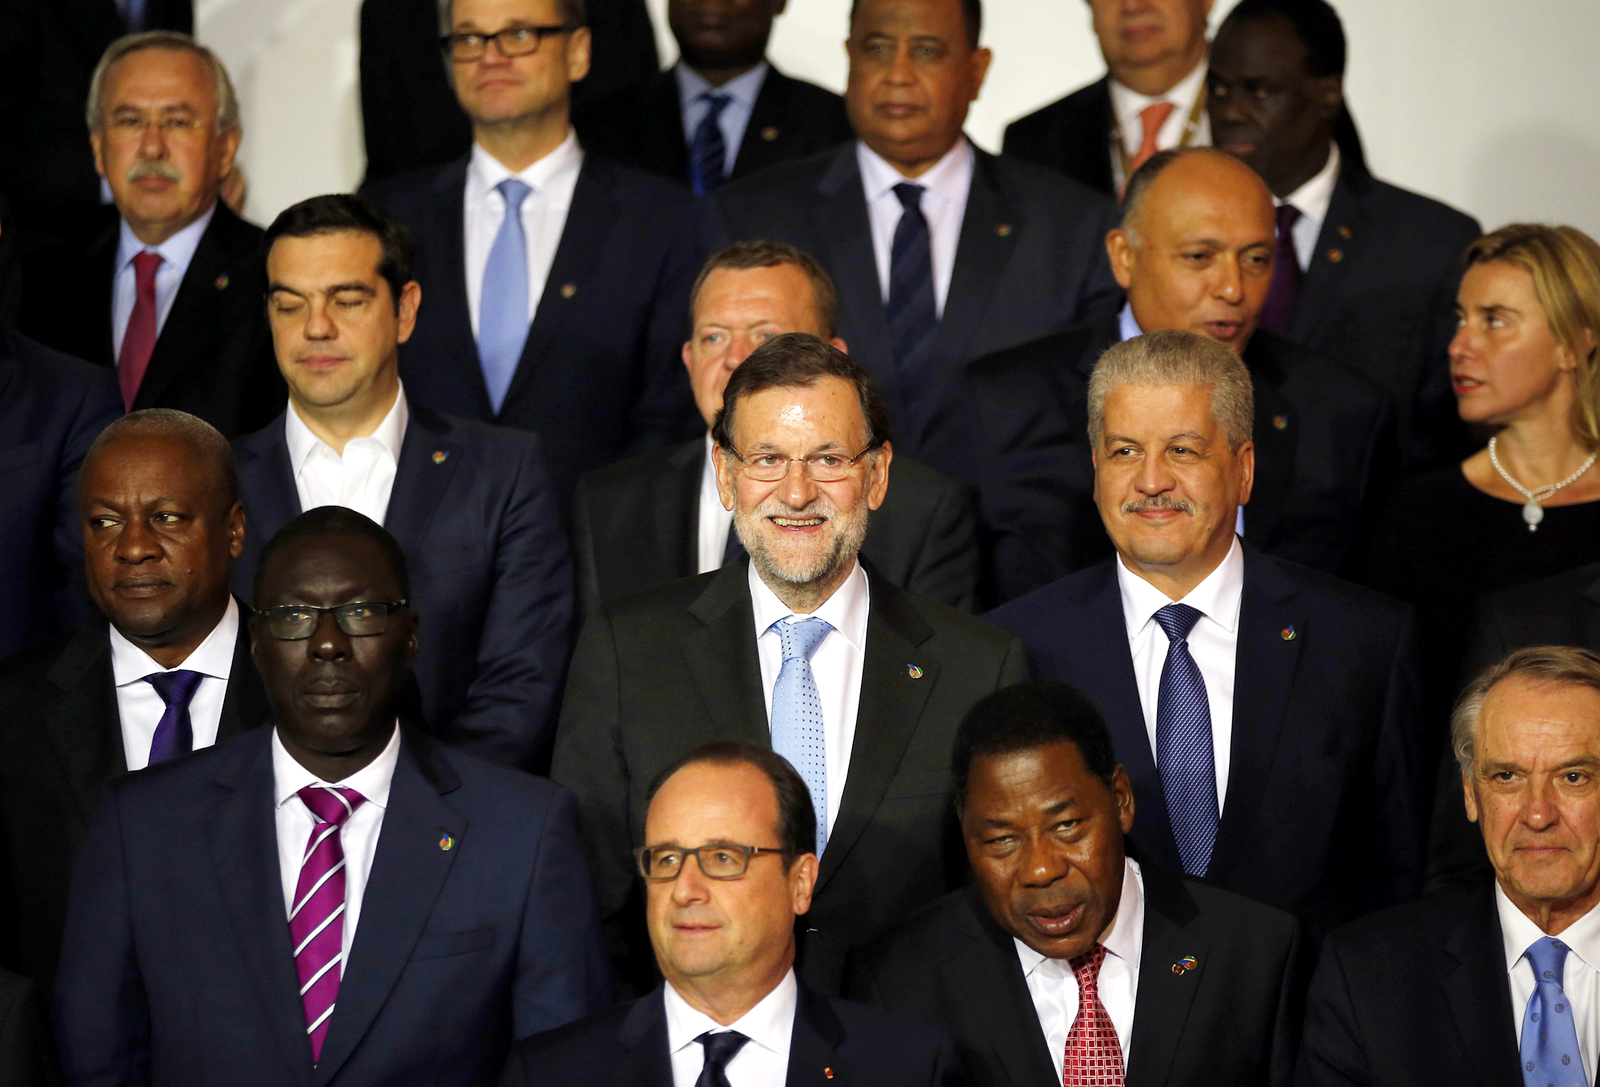 Spain's Prime Minister Mariano Rajoy, center, smiles as he poses for a family picture with European Union and African leaders on the occasion of an informal summit on migration in Valletta, Malta, Wednesday, Nov. 11, 2015. (AP Photo/Antonio Calanni)